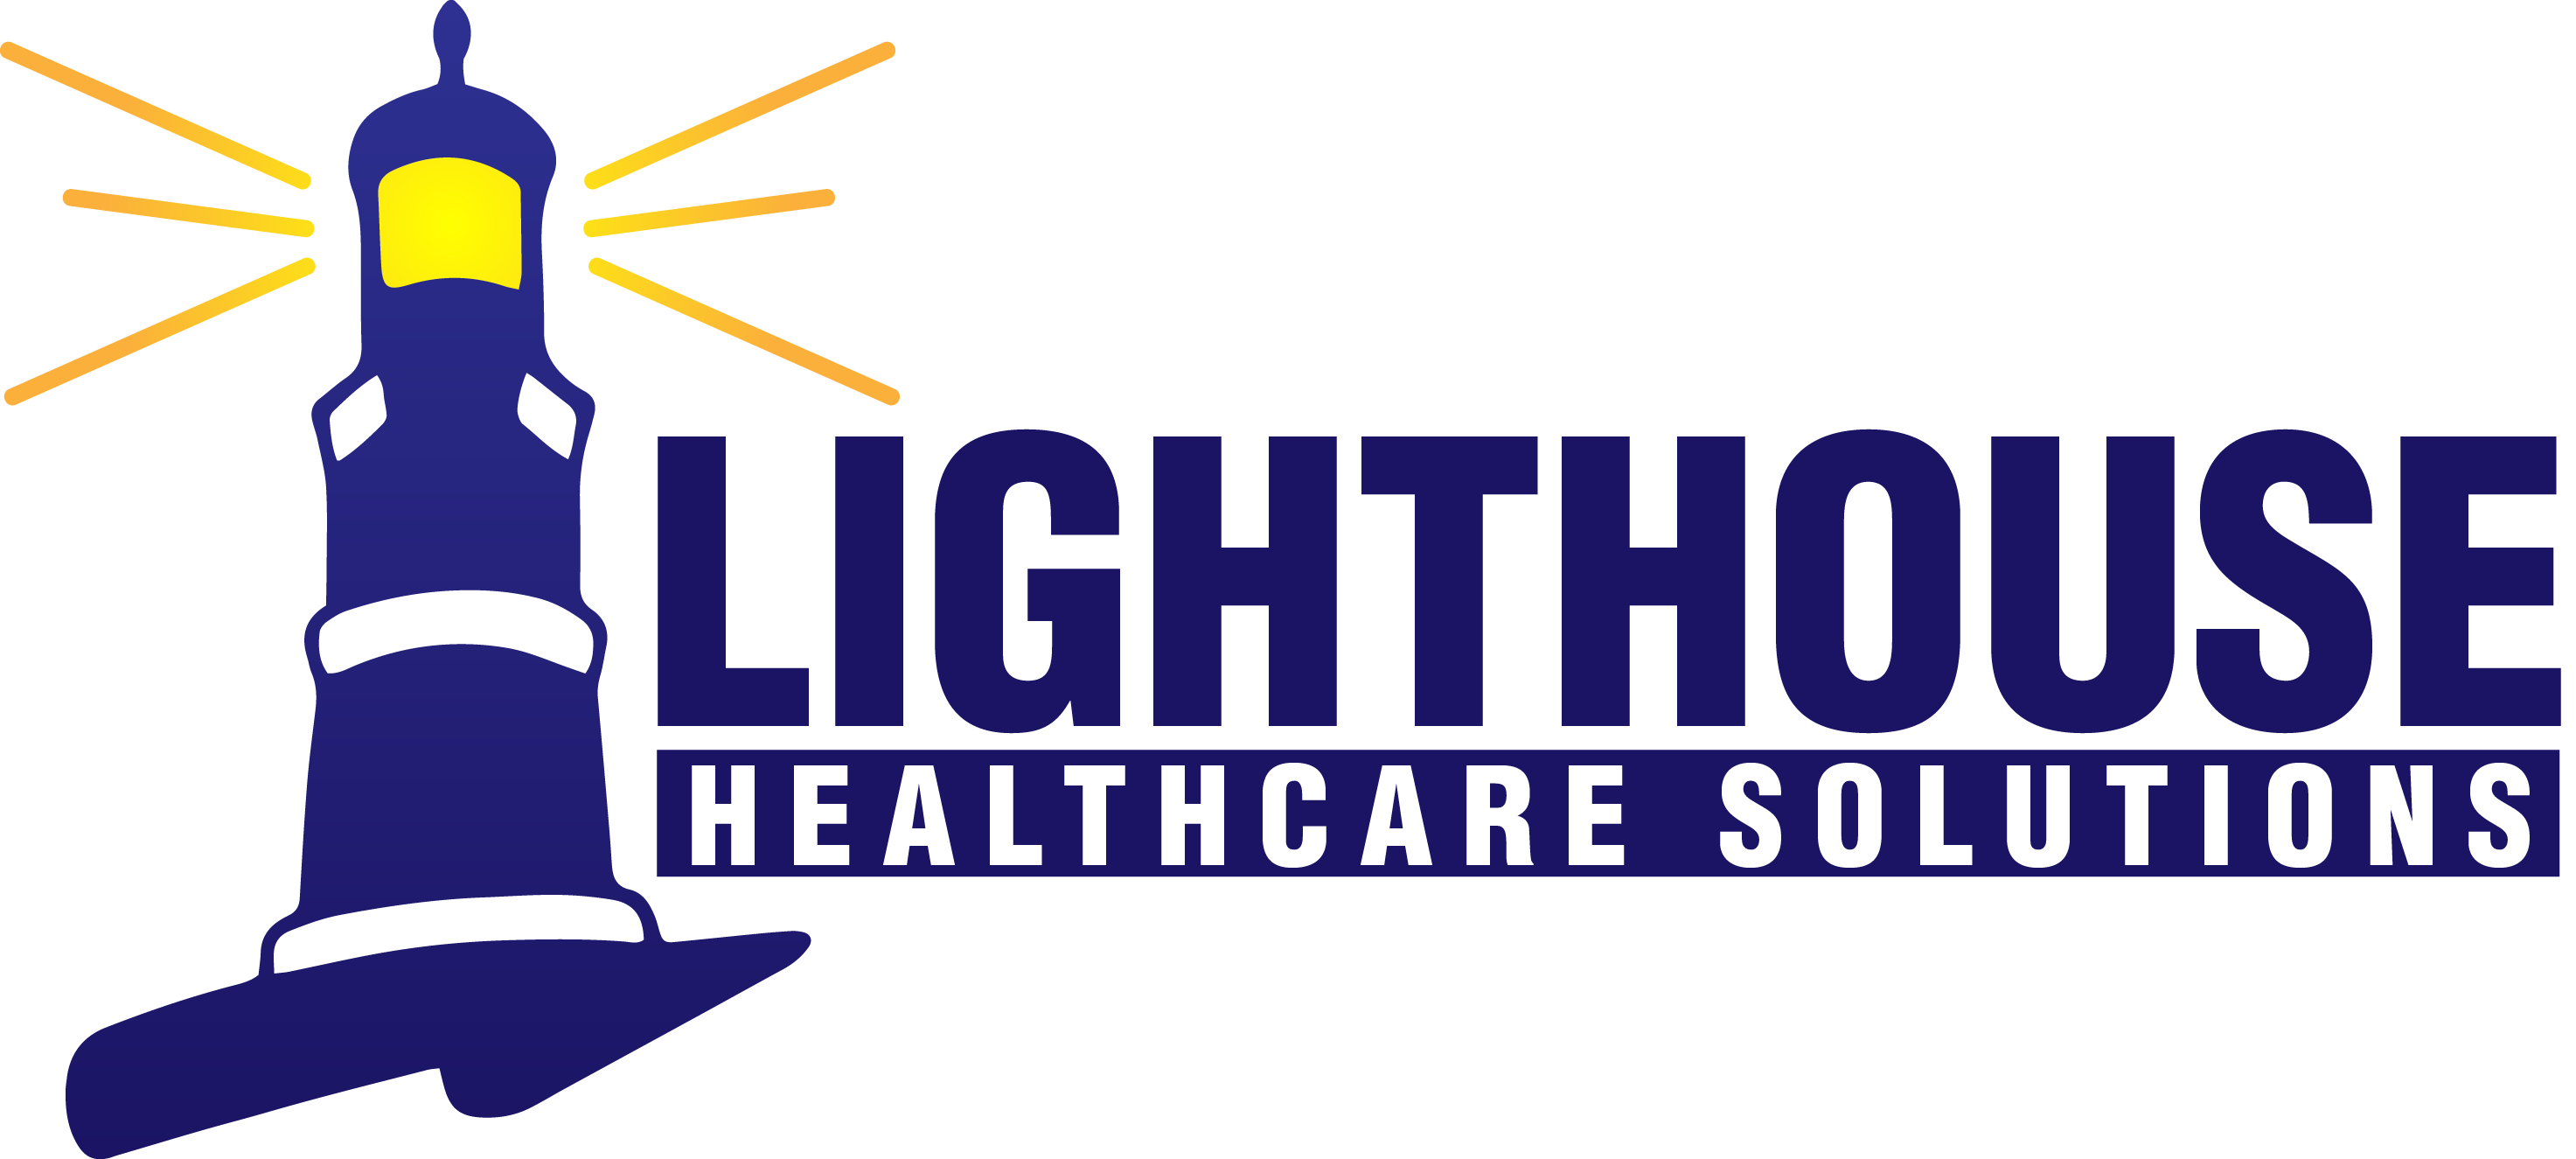 Working in partnership Lighthouse Healthcare Solutions.